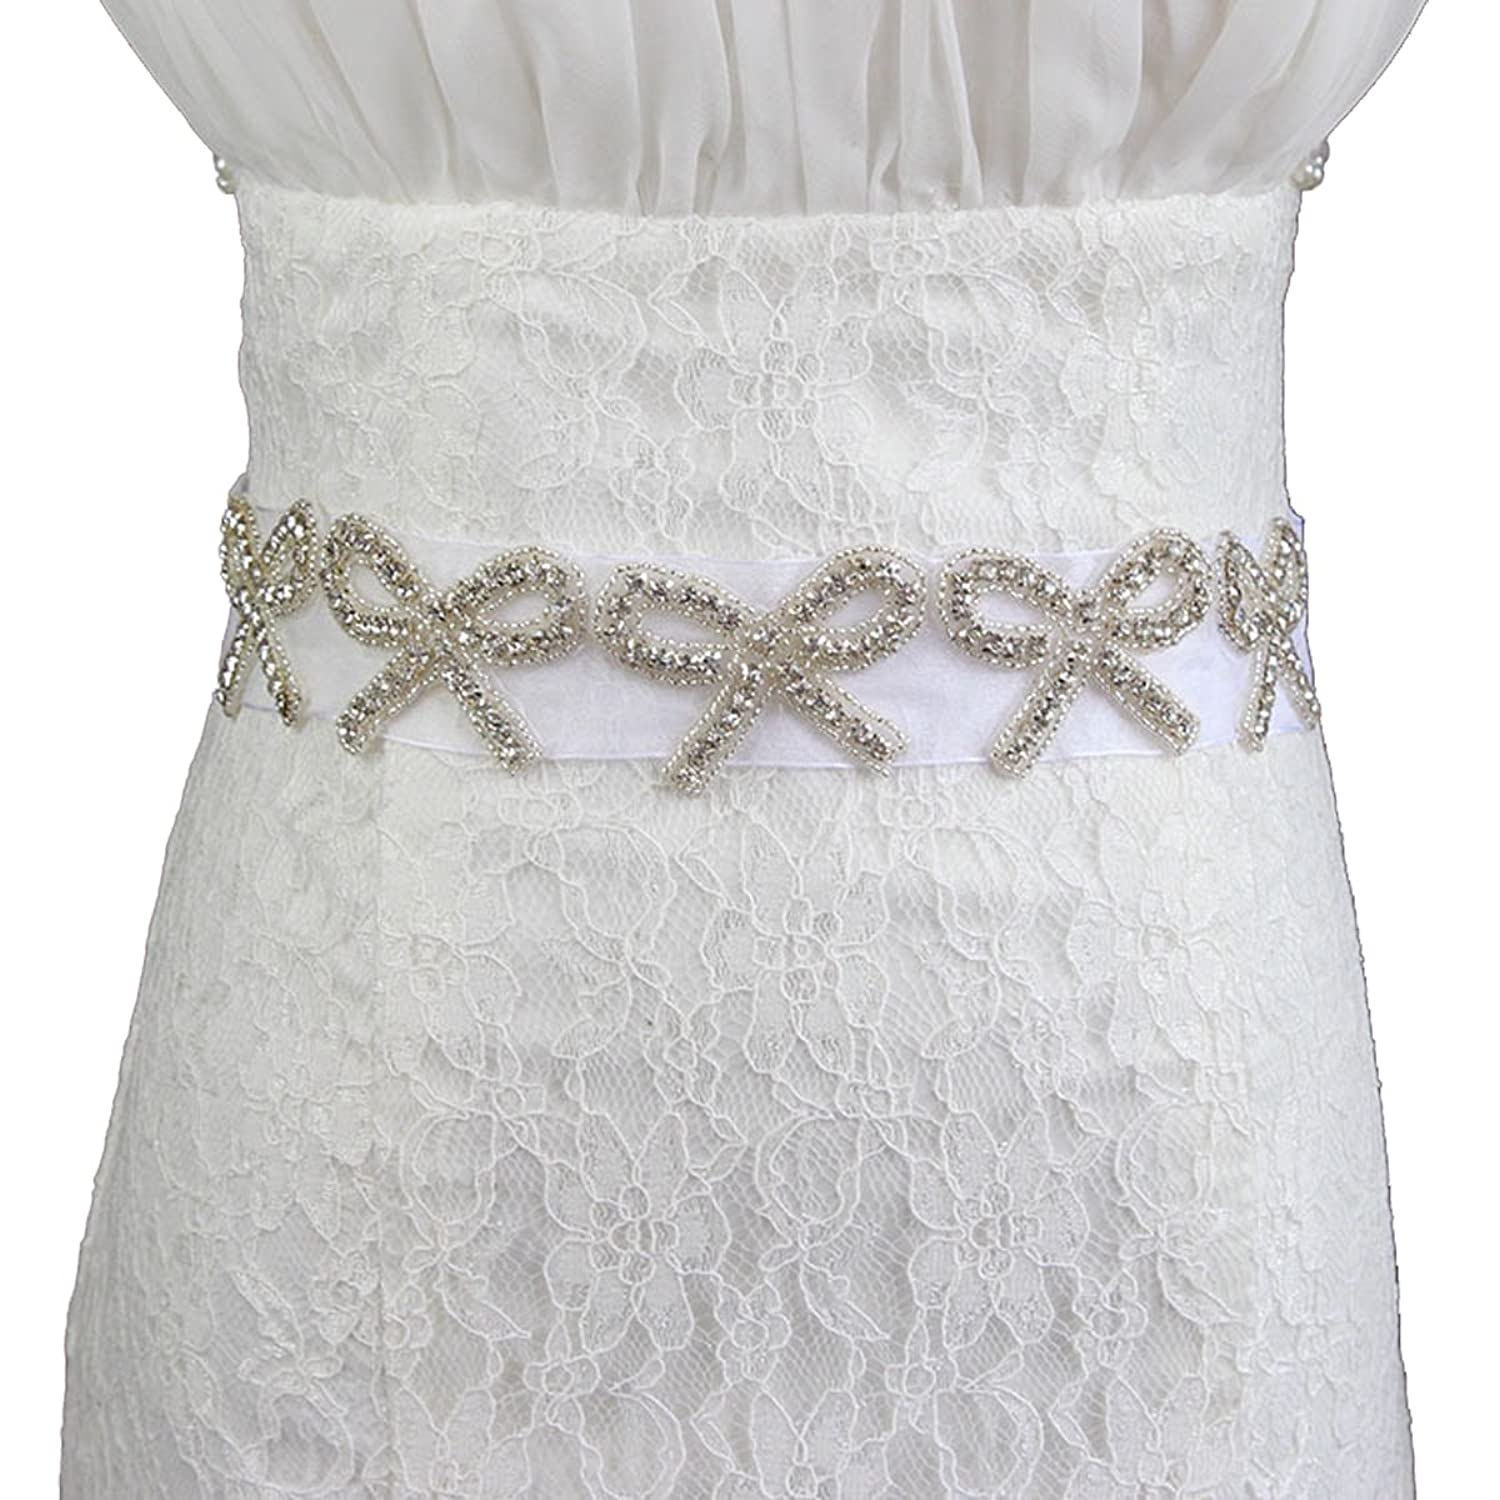 E-Clover Bridal Bowknot Crystal Beaded Rhinestone Wedding Dress Sash Belt